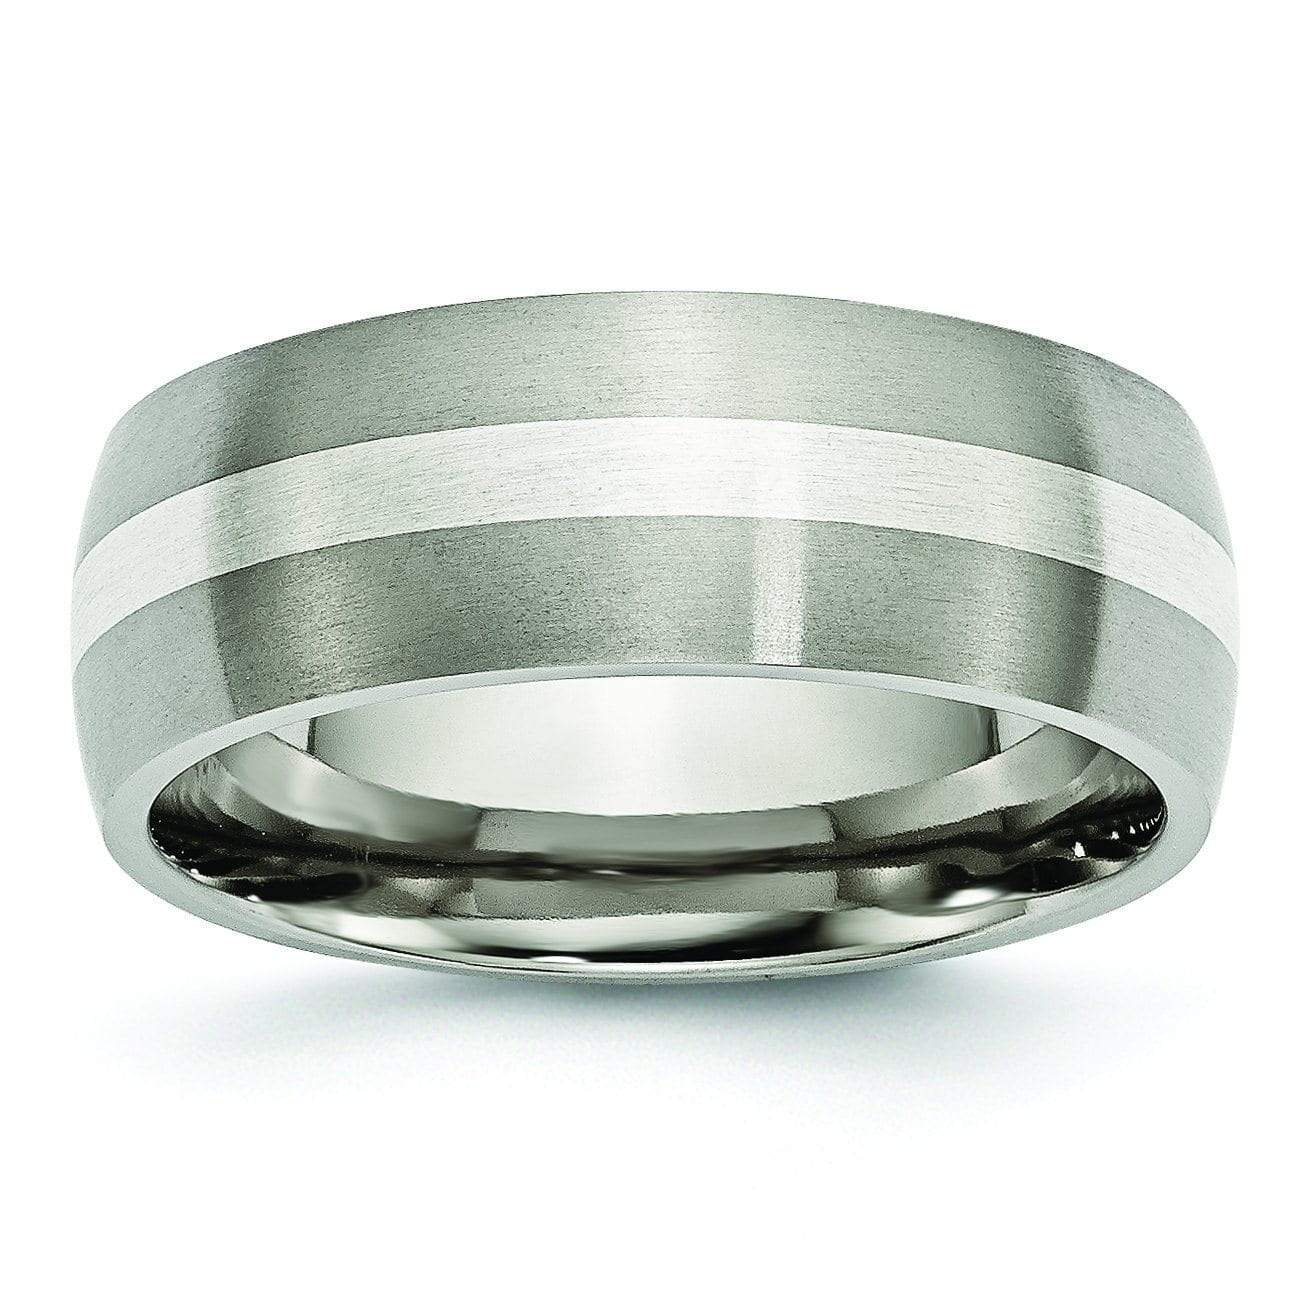 Titanium and Silver Wedding Band Matte Finish in 8mm Titanium Wedding Rings deBebians